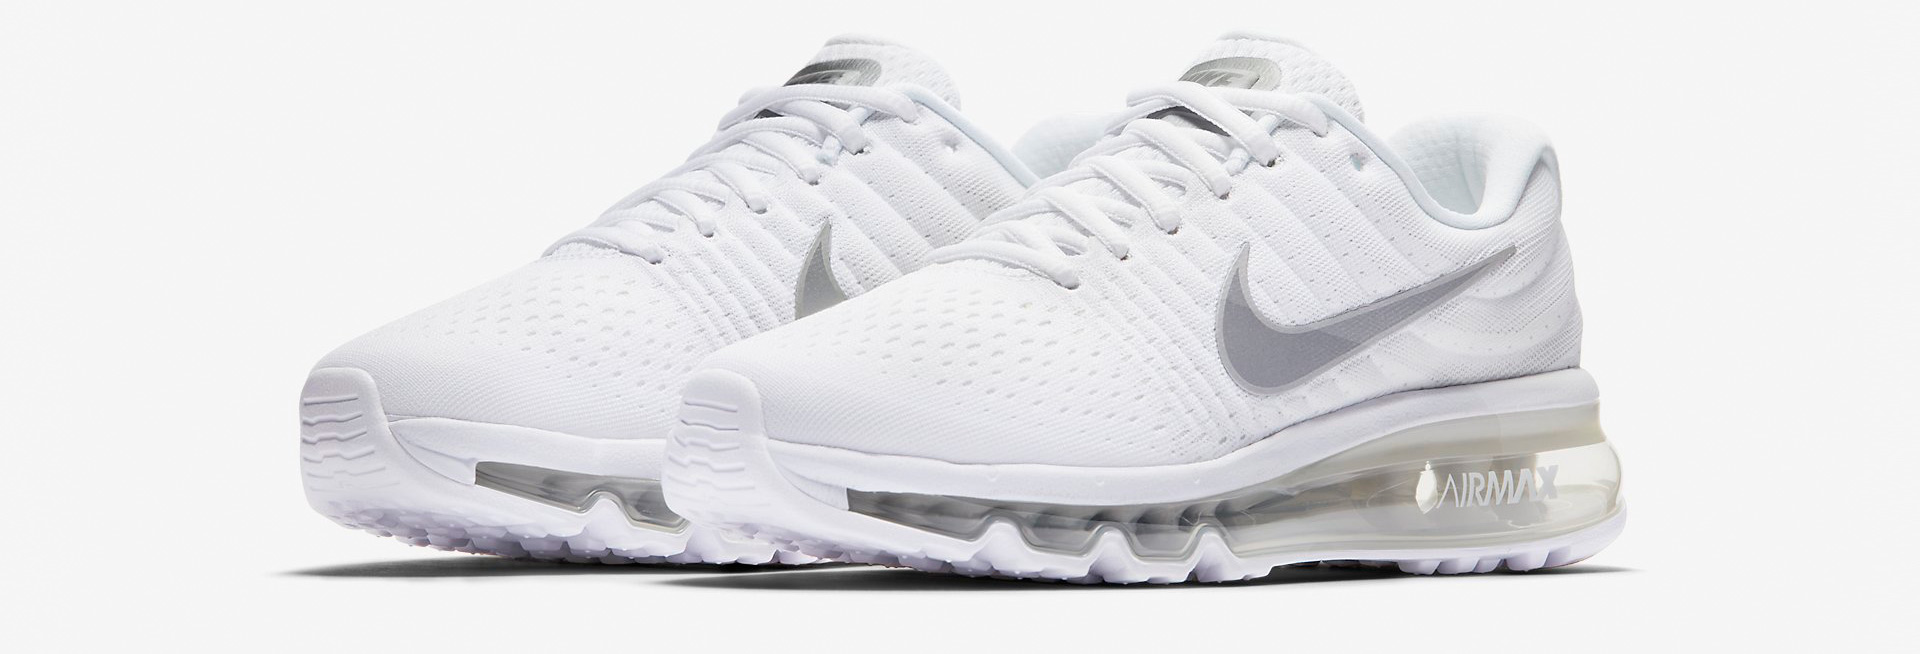 nike air max 2017 wit sale